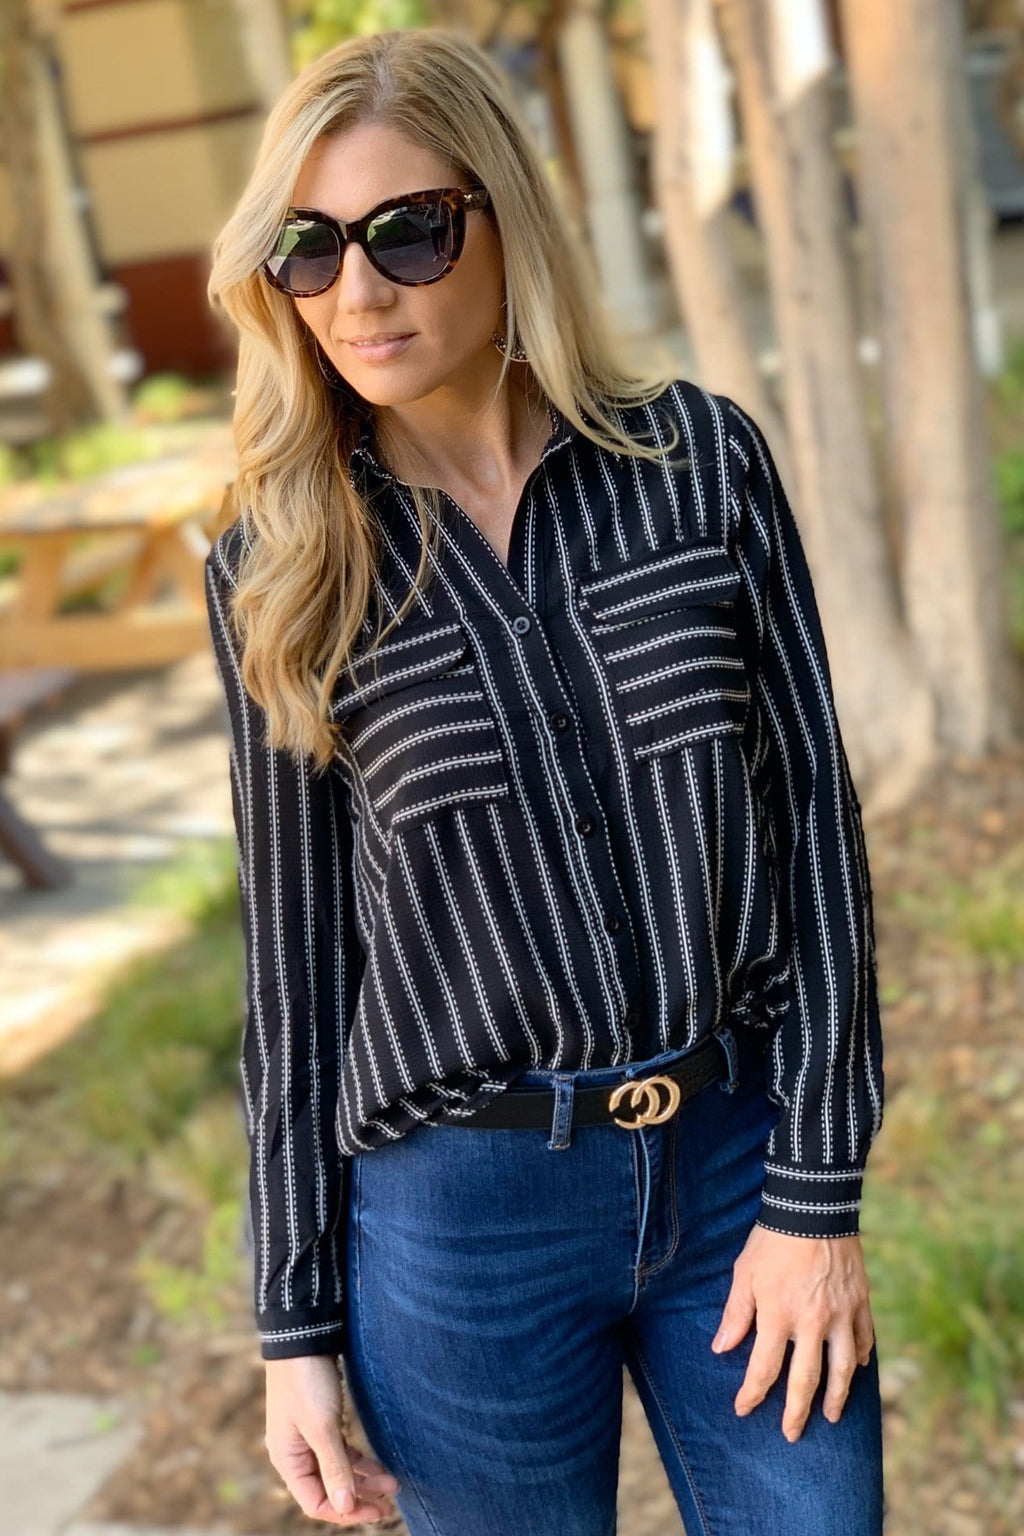 DOUBLE POCKET STRIPE BUTTON UP TOP-BLACK/WHITE - Infinity Raine